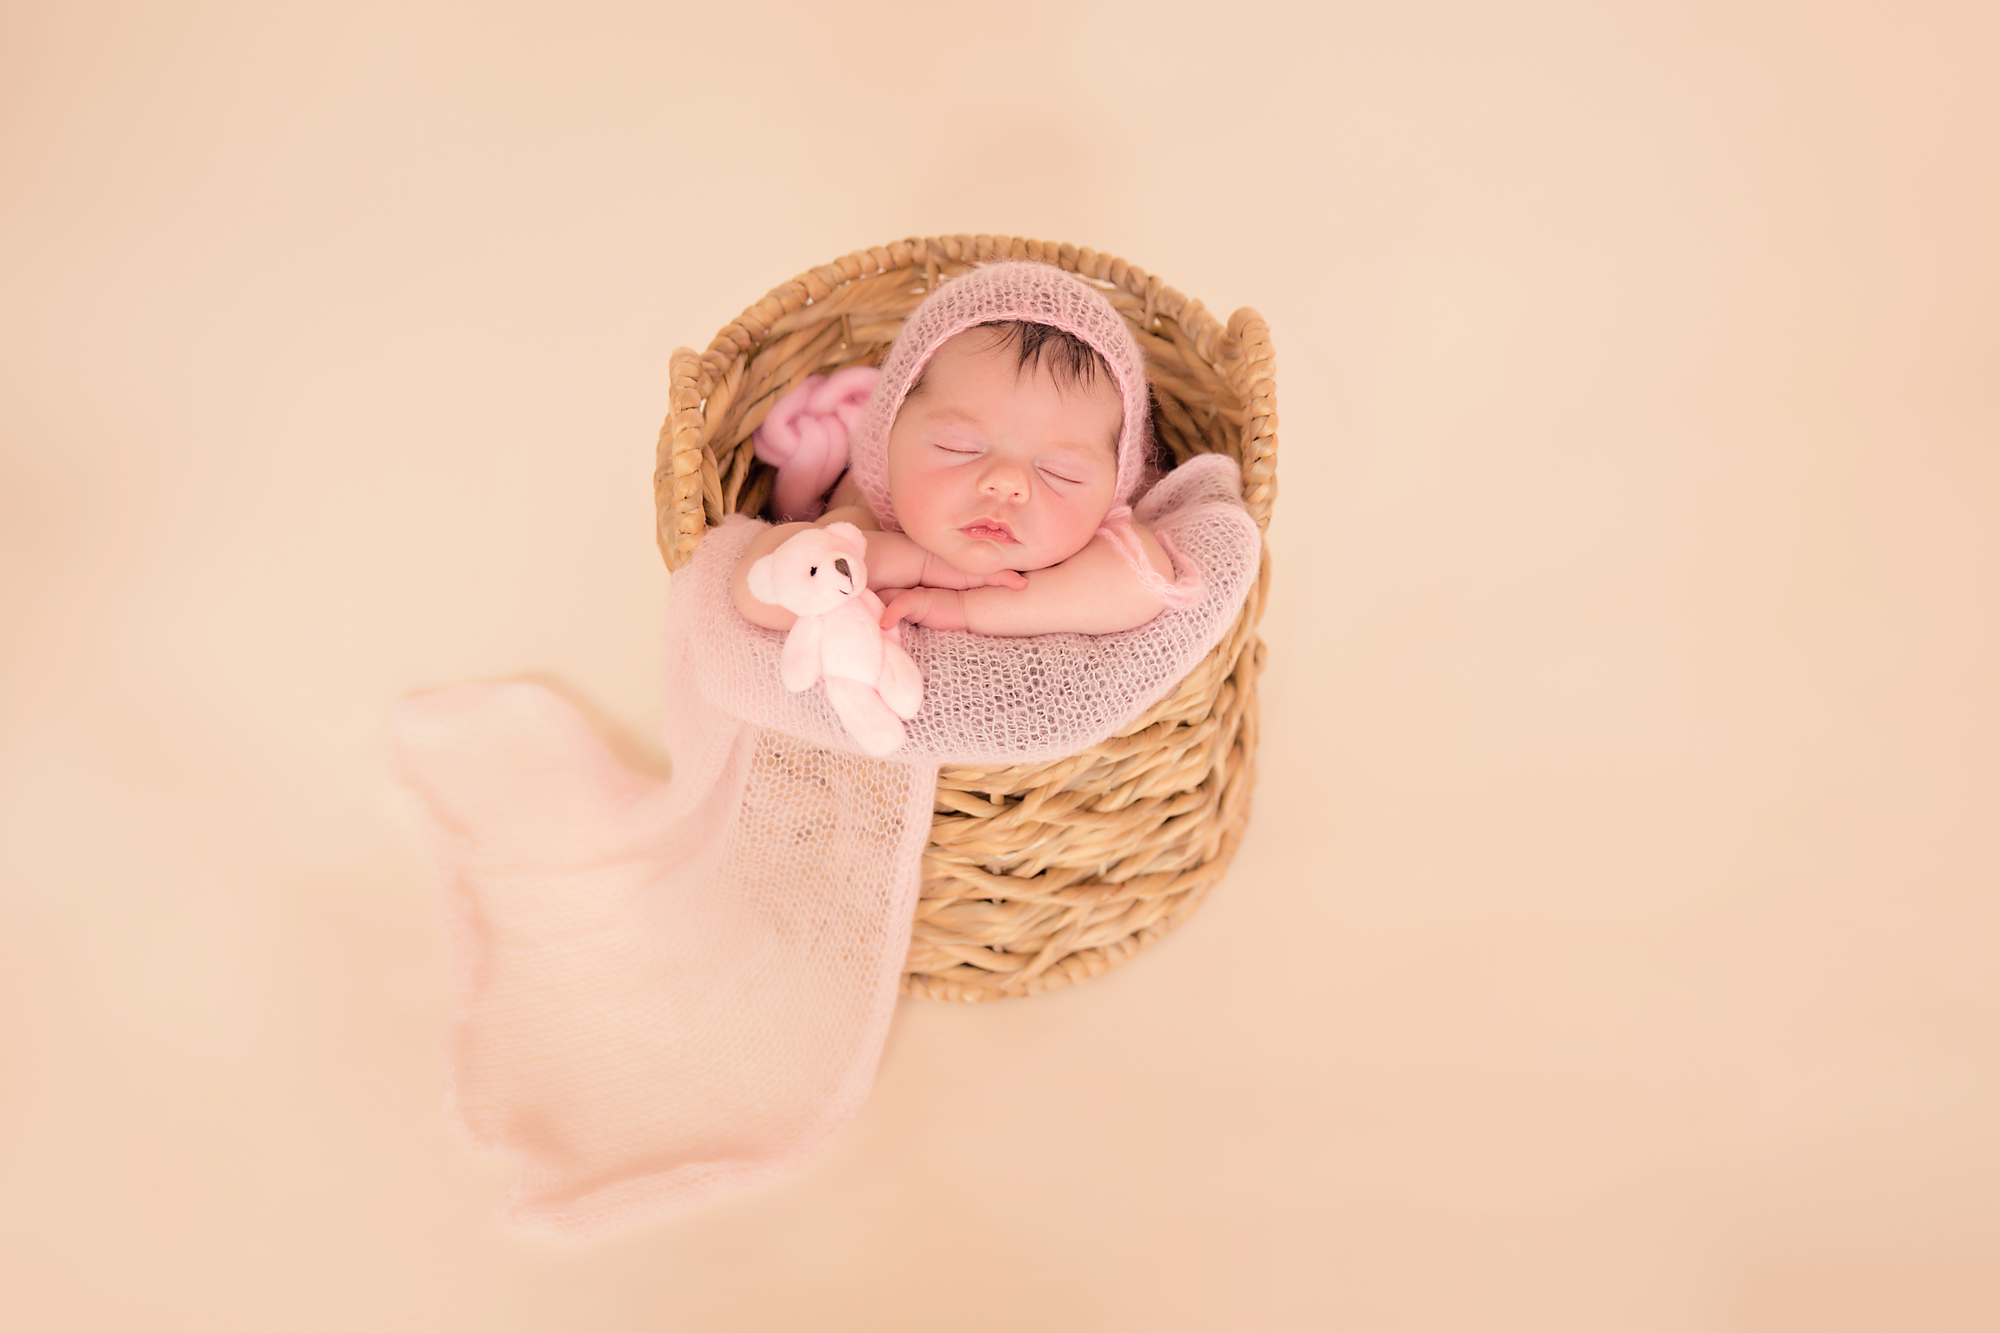 Newborn baby girl photoshoot idea. Calgary and Airdrie Newborn Photographer - Milashka Photography. Baby girl is in a basket and is holding her little pink bear.